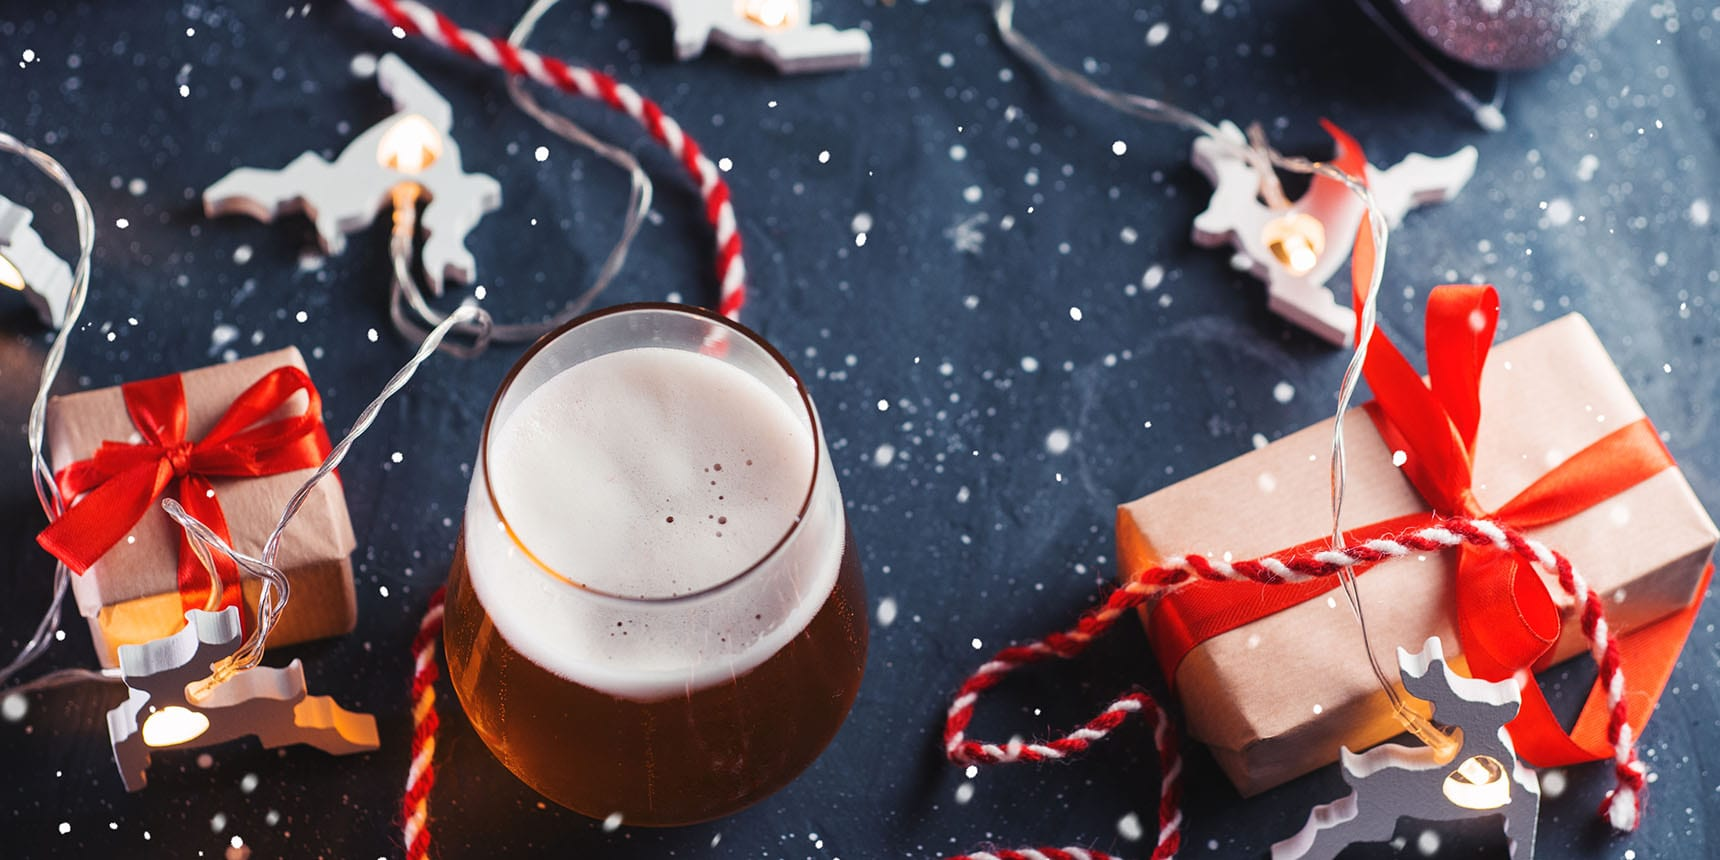 Utah's breweries are helping to take the stress out of finding the perfect gifts for the beer lovers on your list.